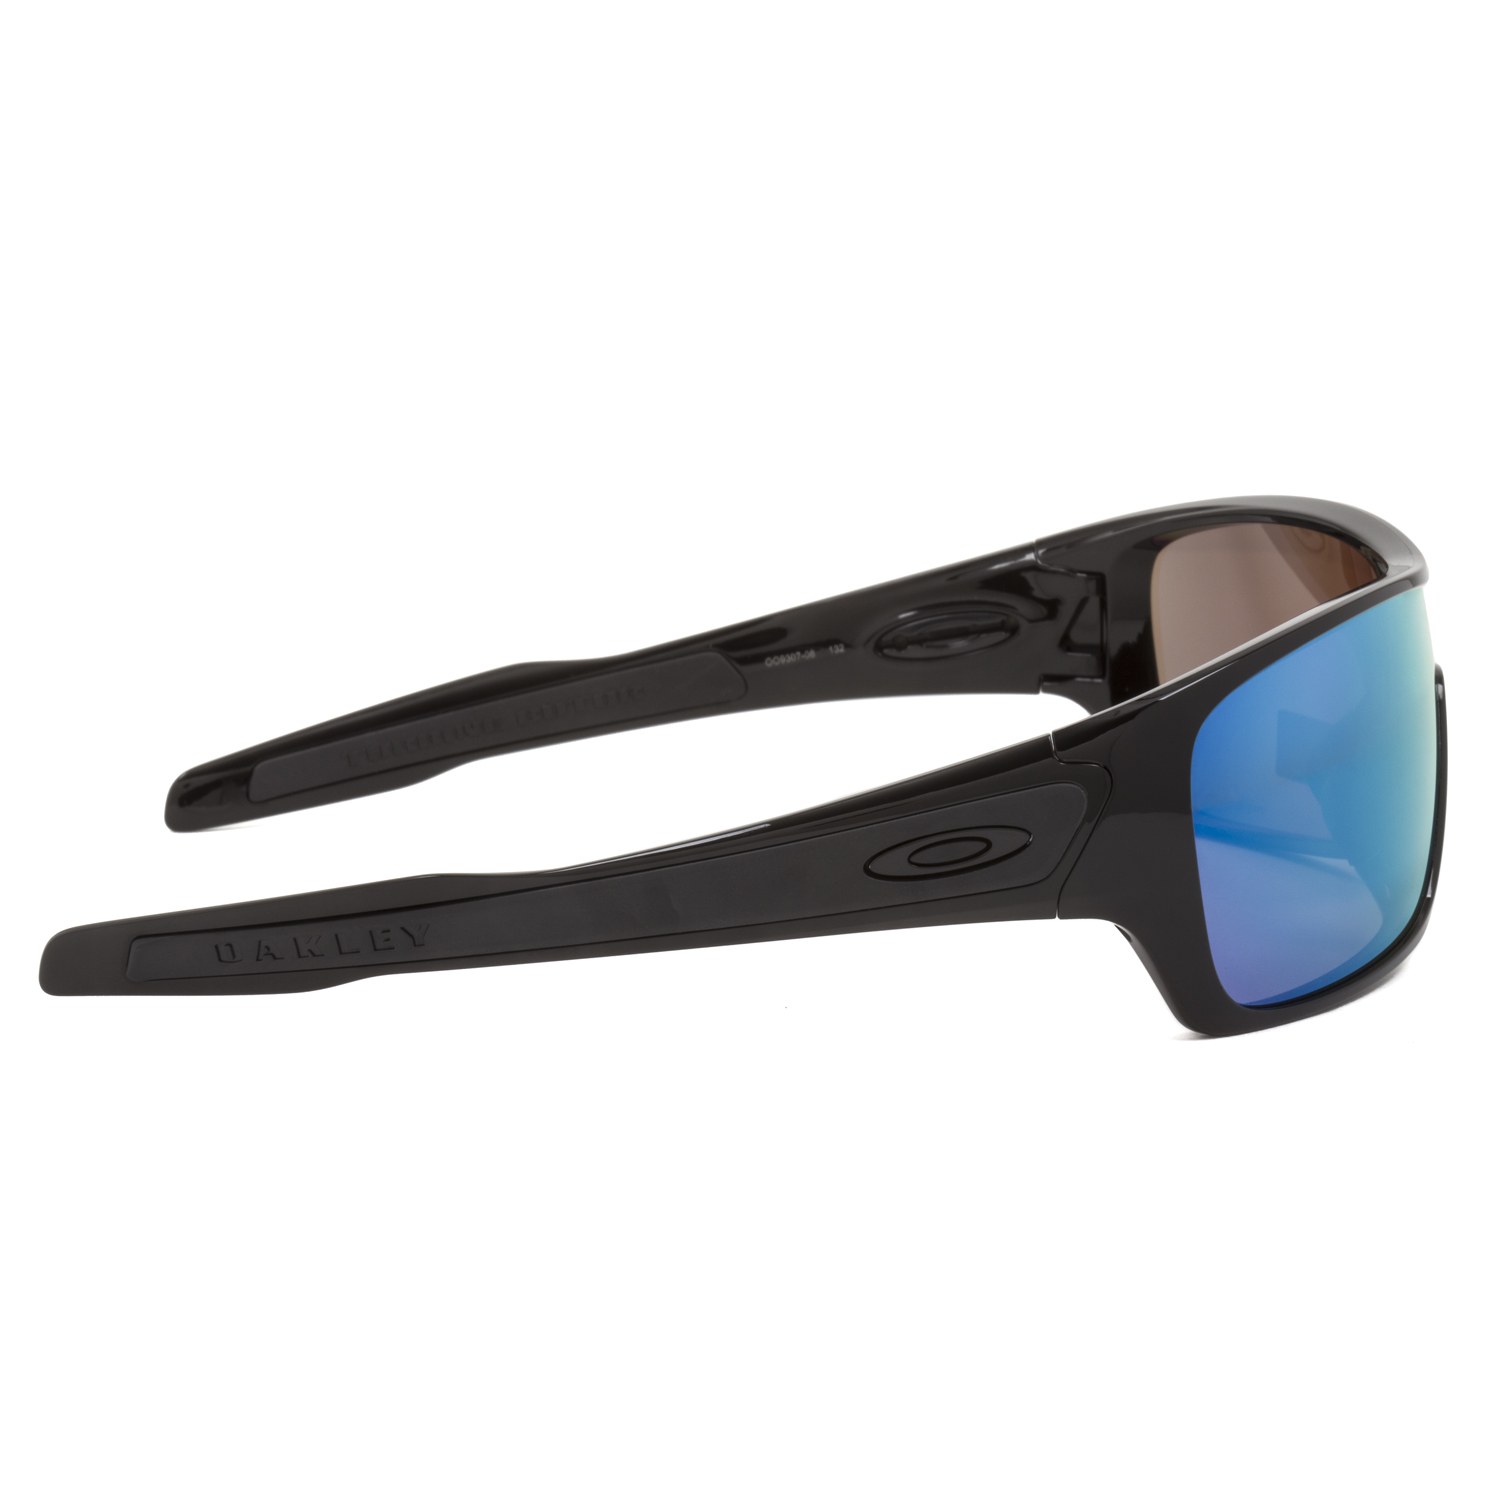 d2016aca34 Oakley Men s Oo9307 Turbine Rotor Prizm Sunglasses Polarised ...